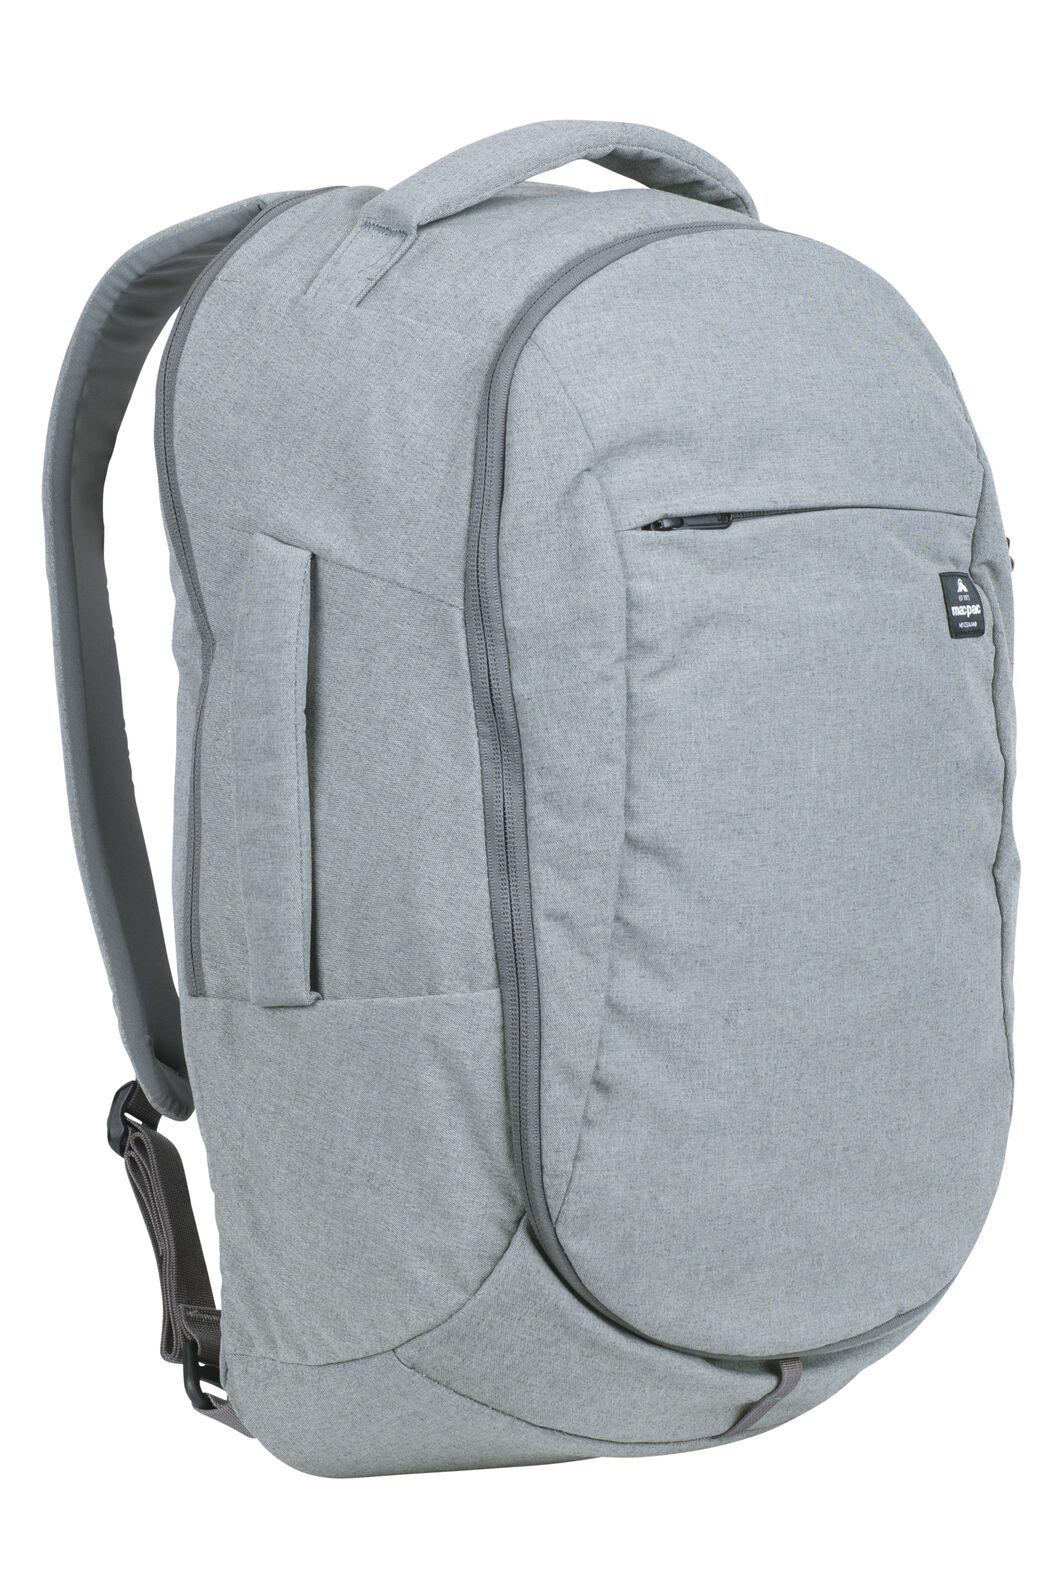 Macpac UTSIFOY 1.1 25L Backpack, Castor Grey, hi-res